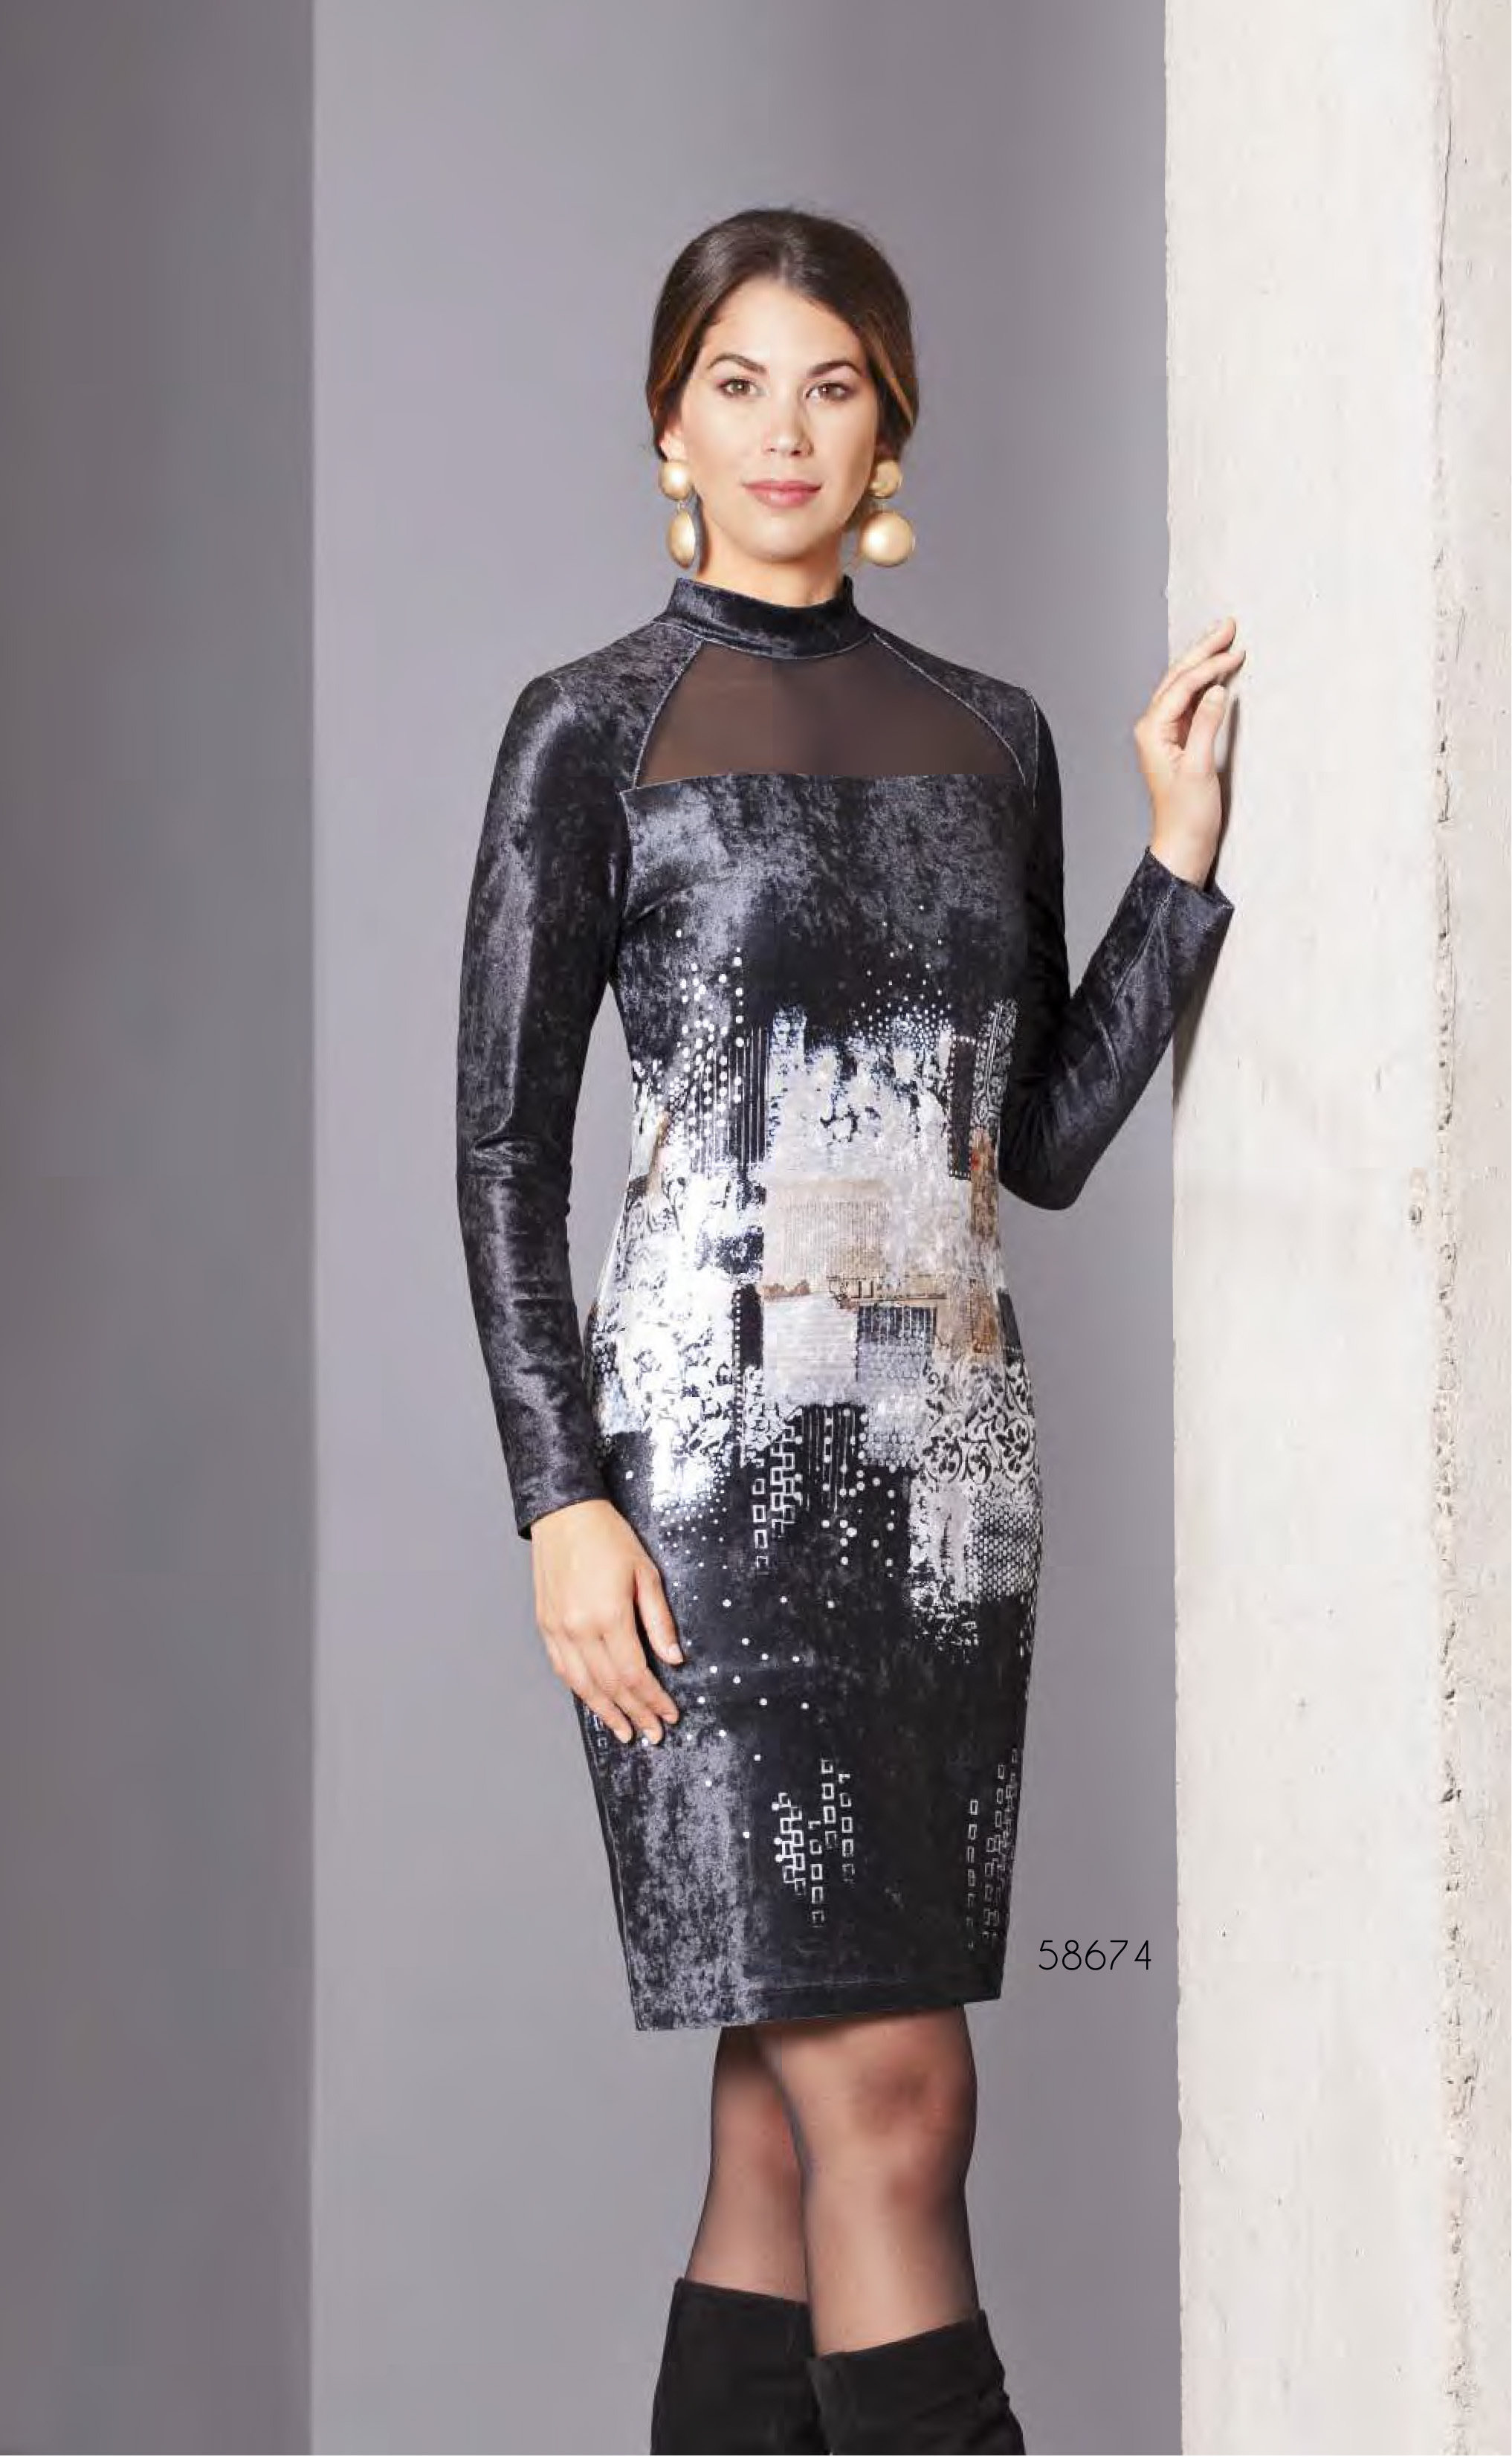 Simply Art Dolcezza: Explosion of Crystals Abstract Art Velvet Dress (1 Left!) DOLCEZZA_SIMPLYART_58674_N2